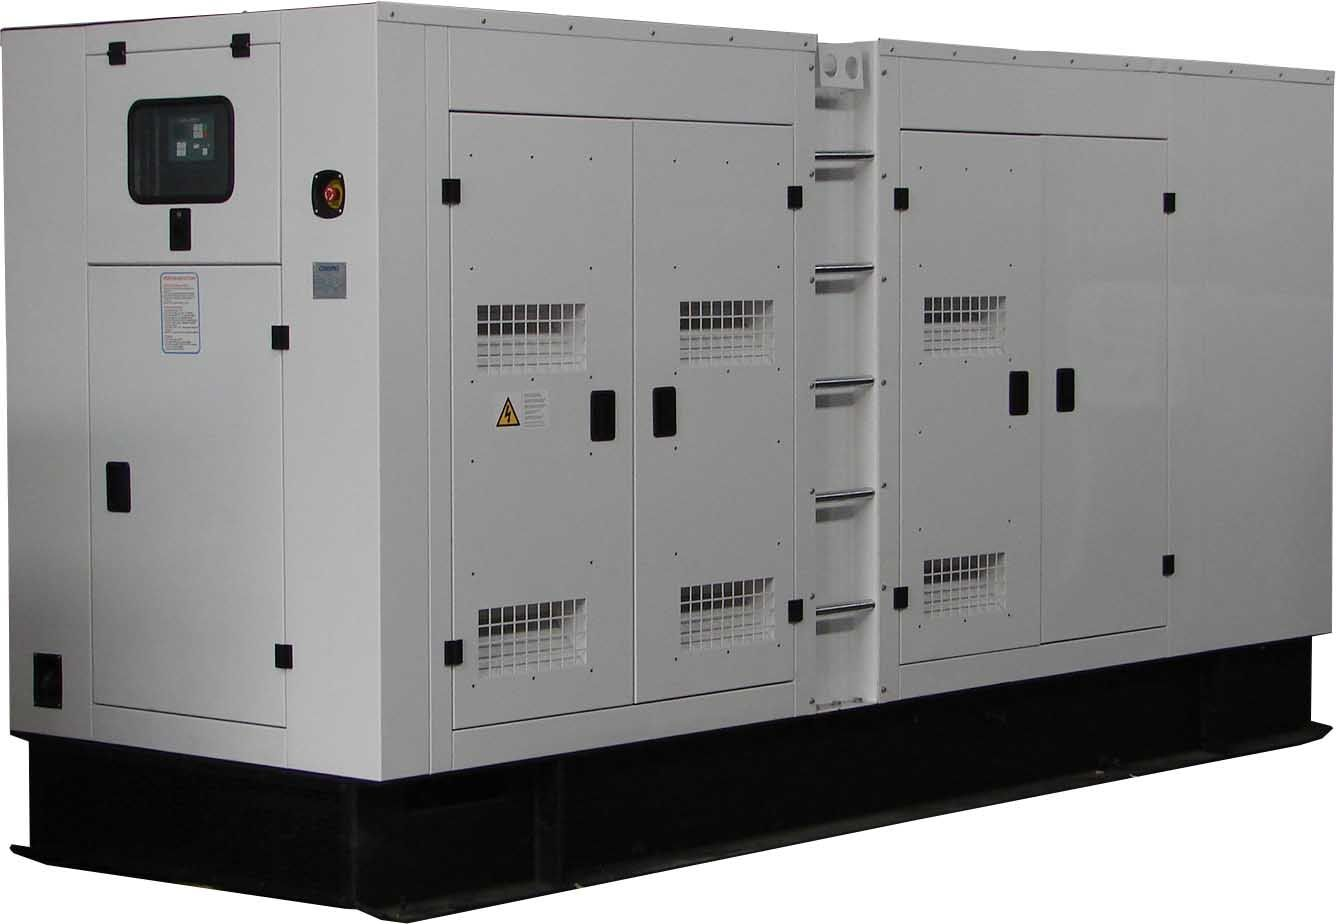 If You Are Looking For Best Quality Perkins Generators In Uk Then Electrical Can Contact They Have The Largest Stock Of Used Diesel